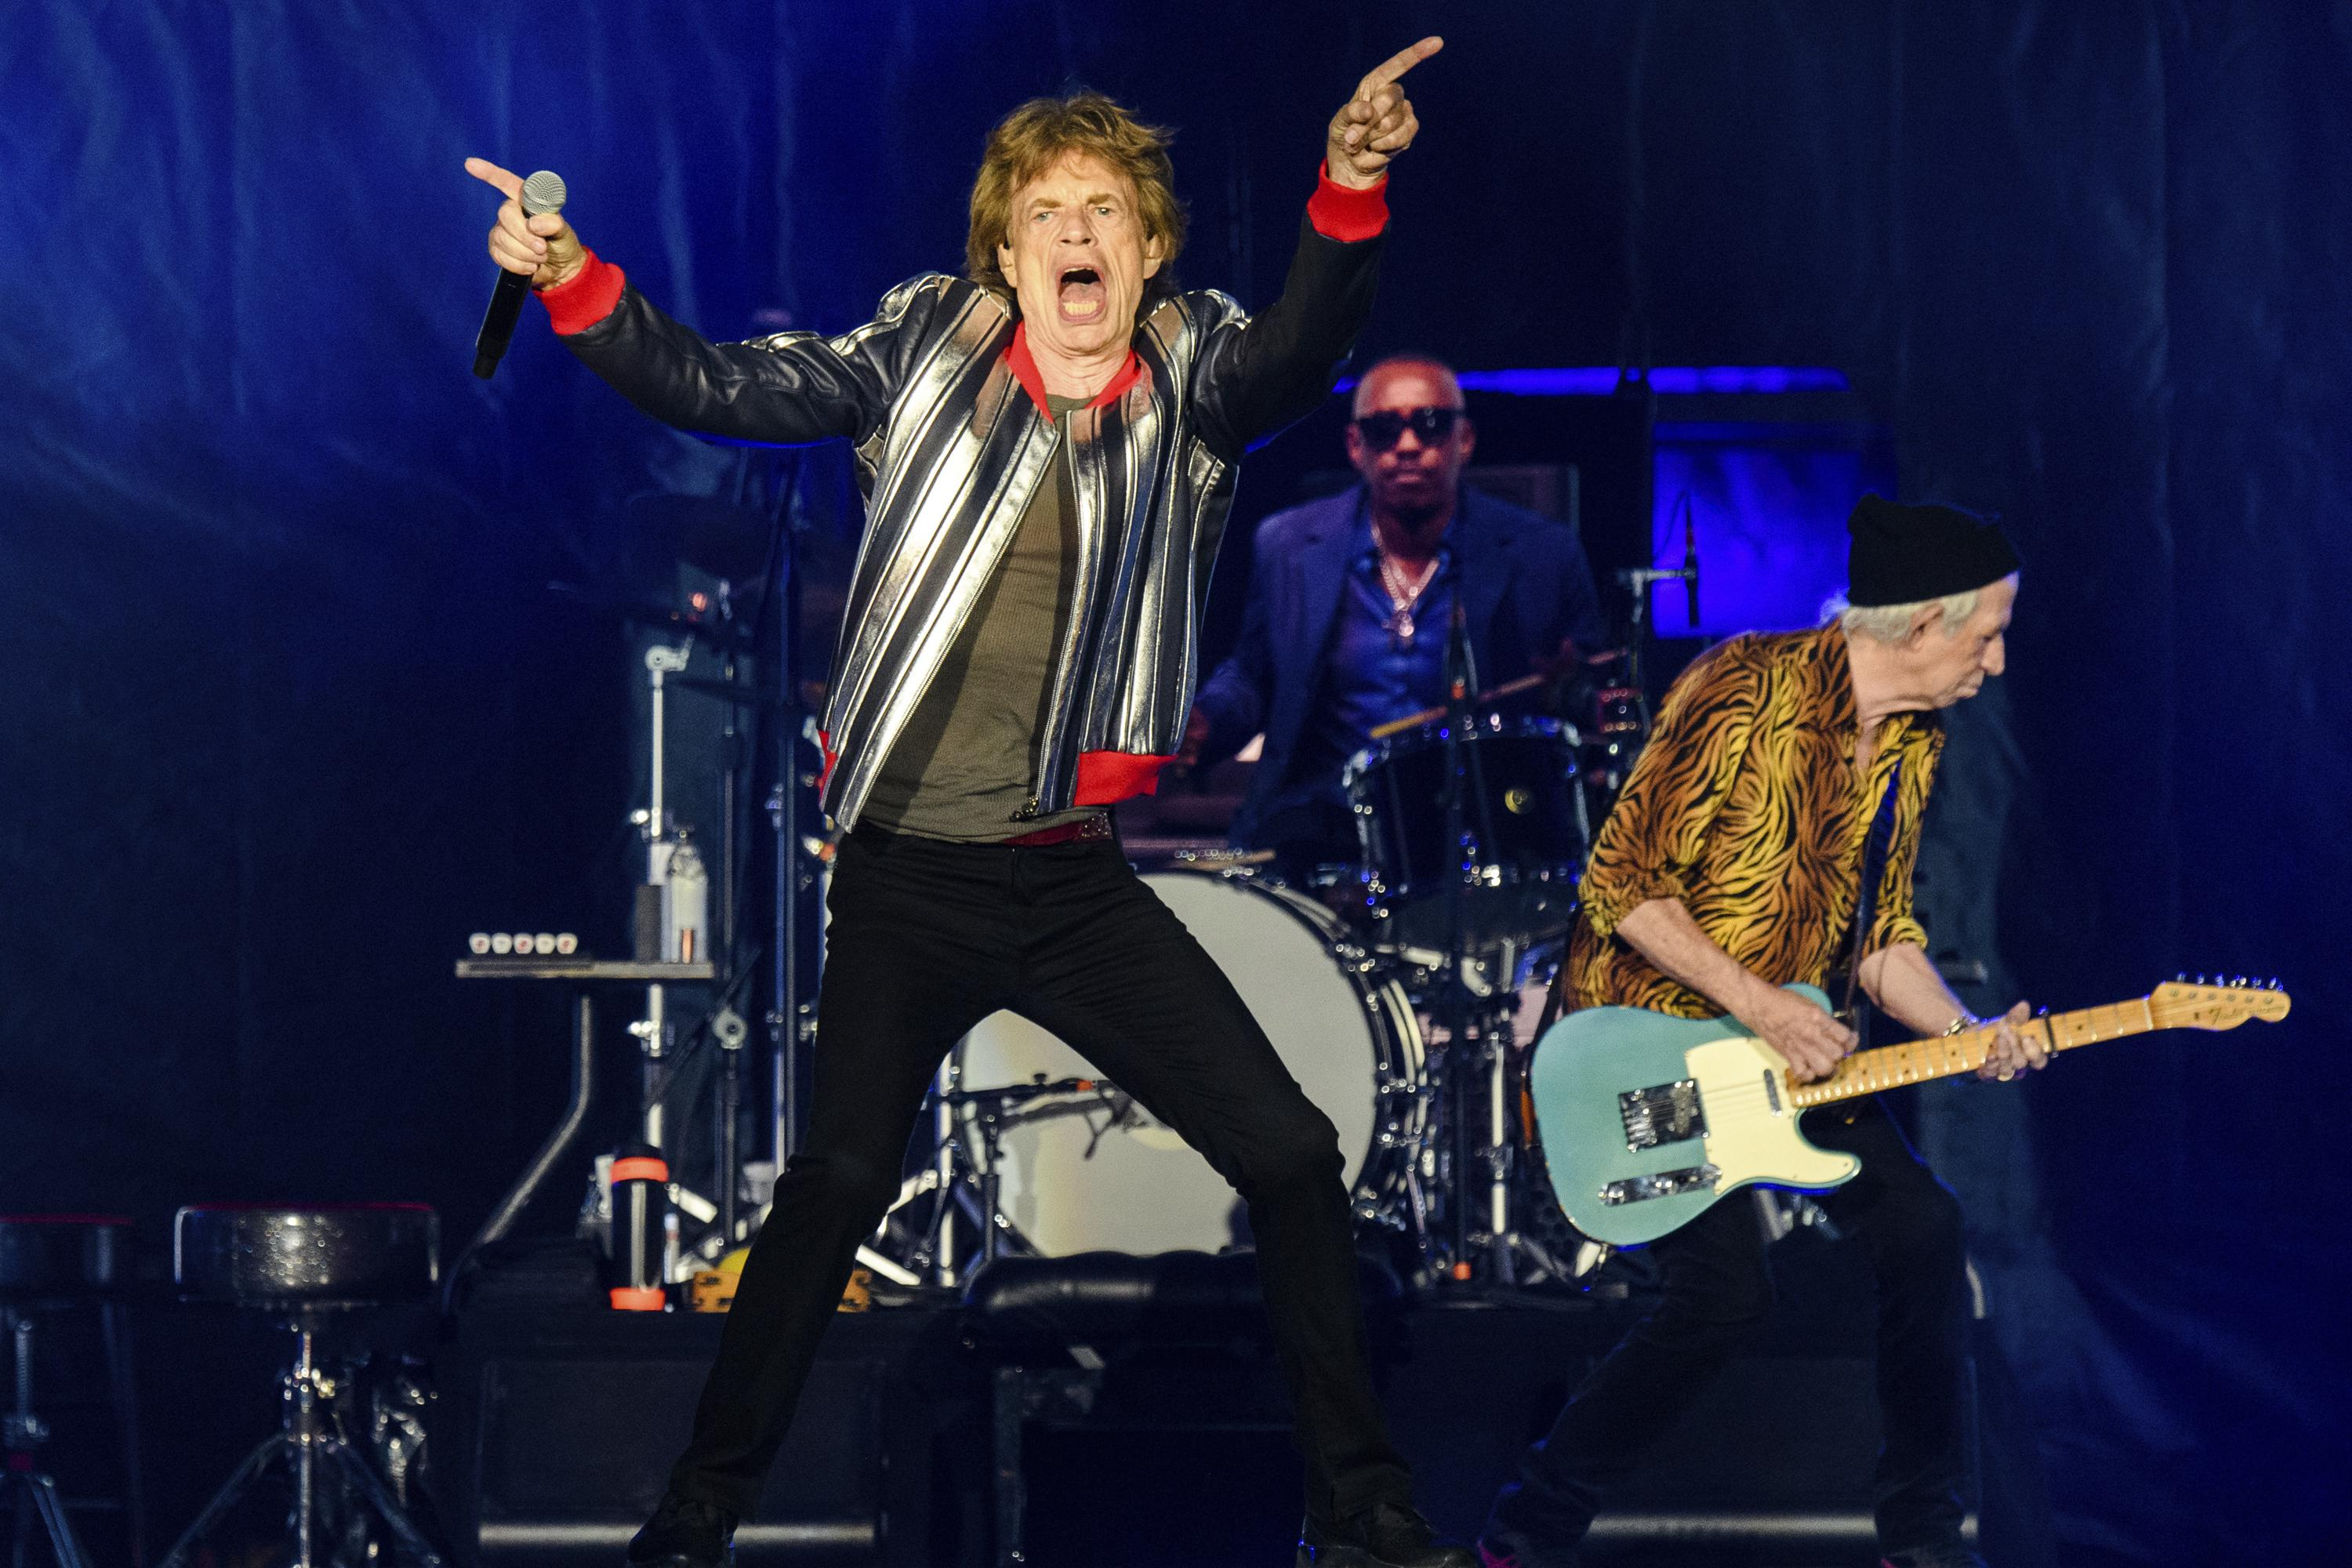 Rolling Stones open American tour, pay tribute to drummer – Associated Press